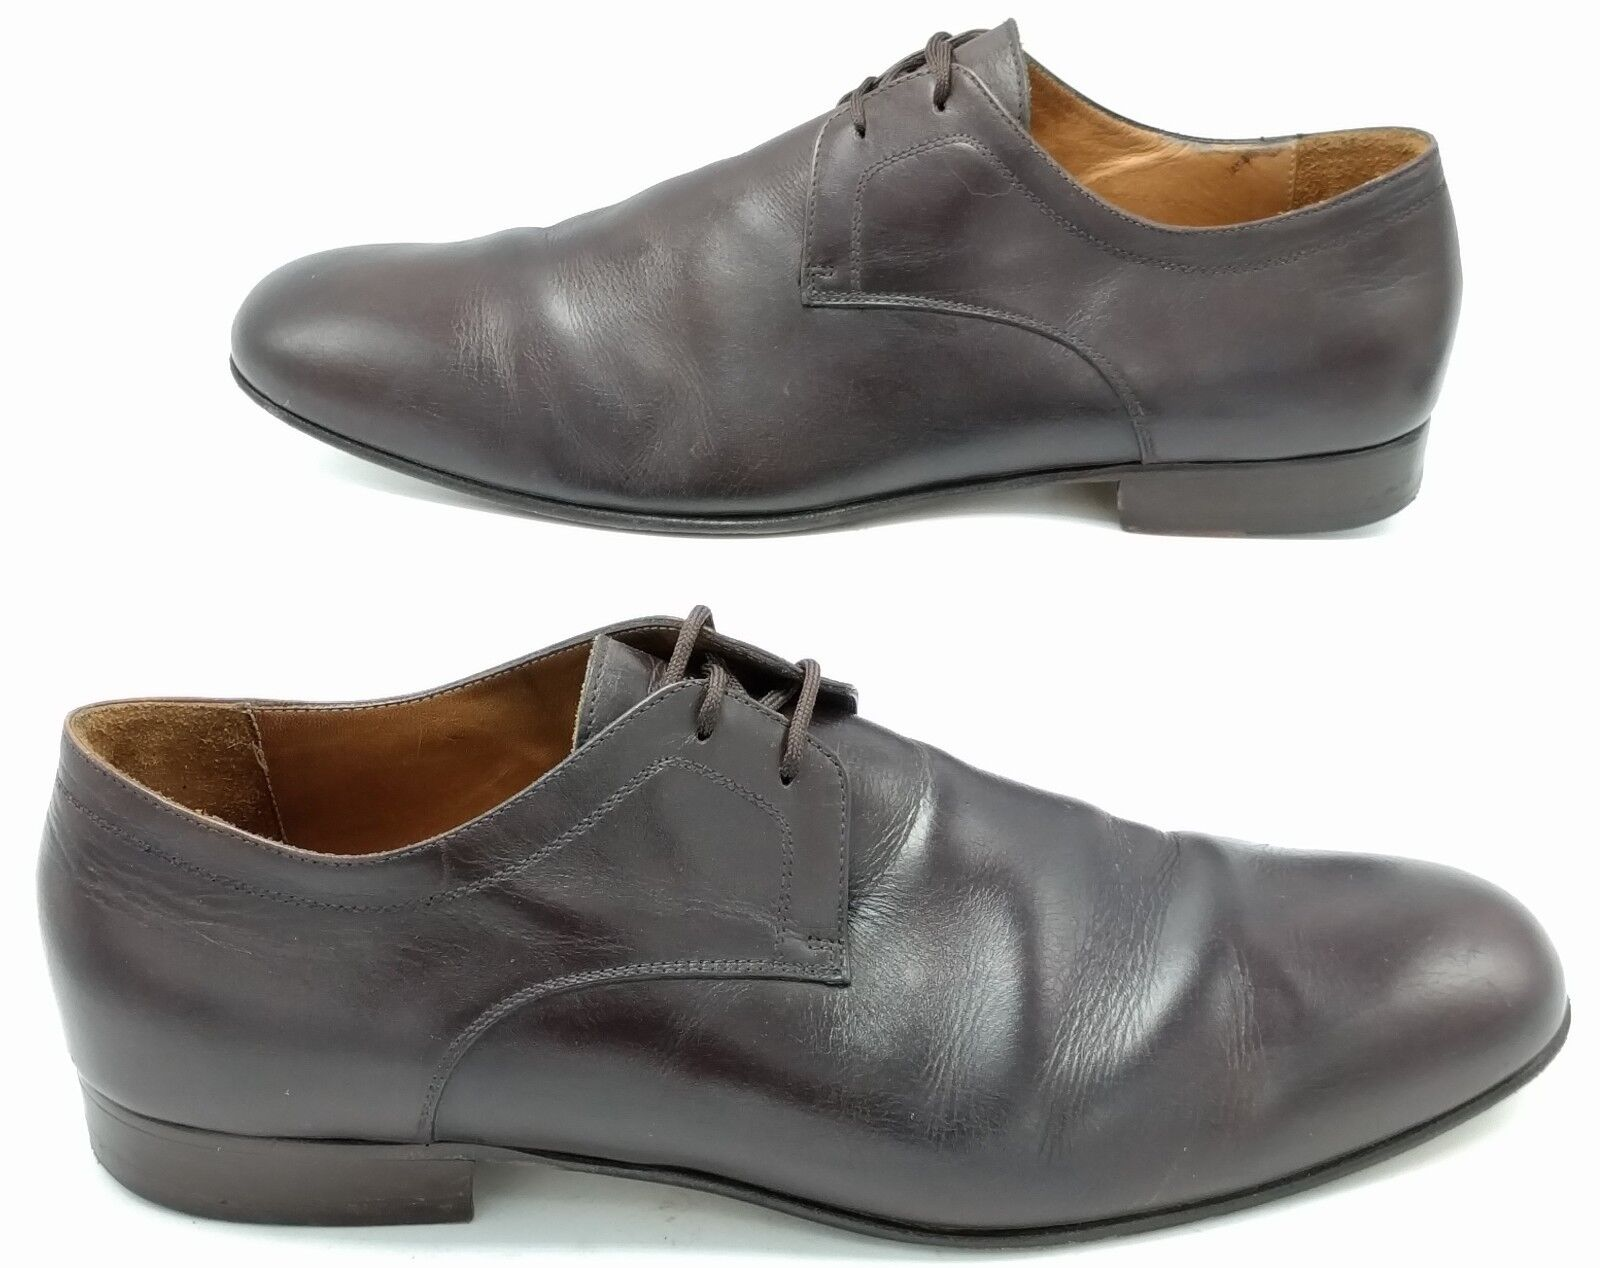 ACNE Studios Leather Derby shoes Size 46 13M Oxfords Dress  2 Eyelet